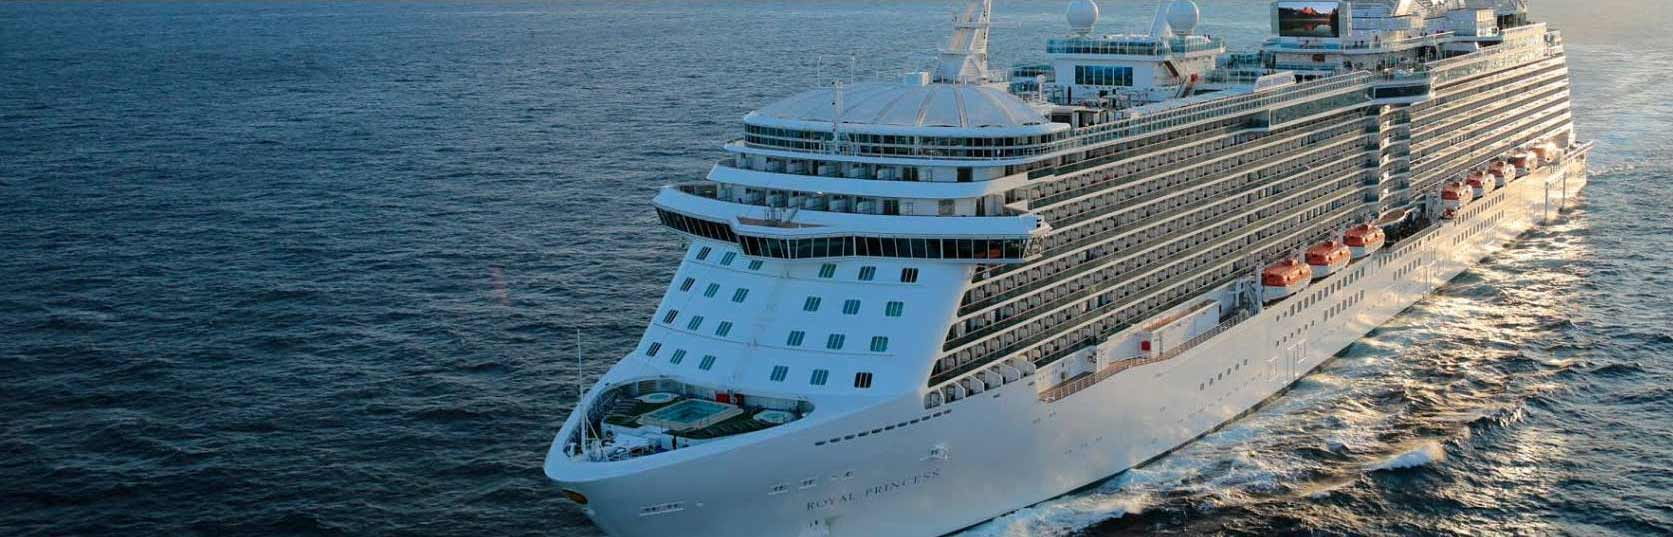 Cruise Culinary Academy Of India ACCLA - Cruise ships from india